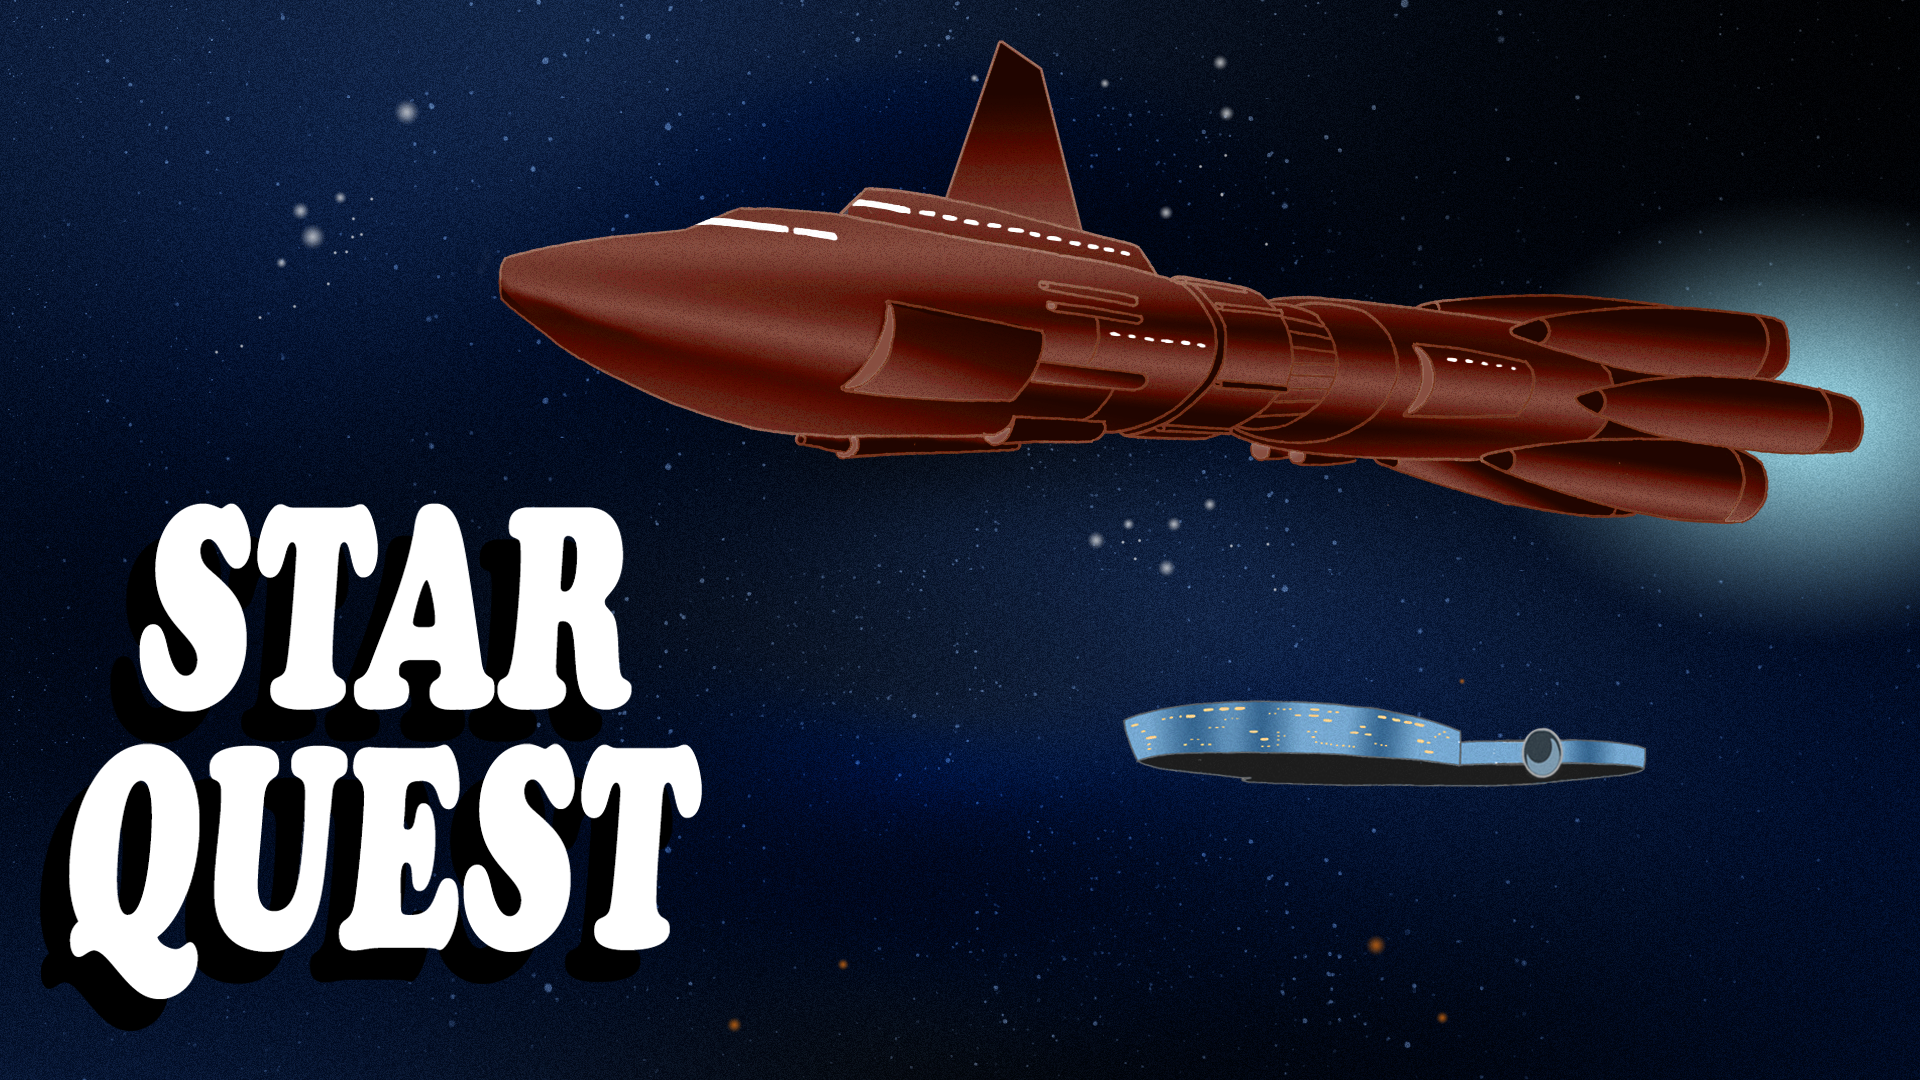 """Thumbnail of """"Star Quest"""""""